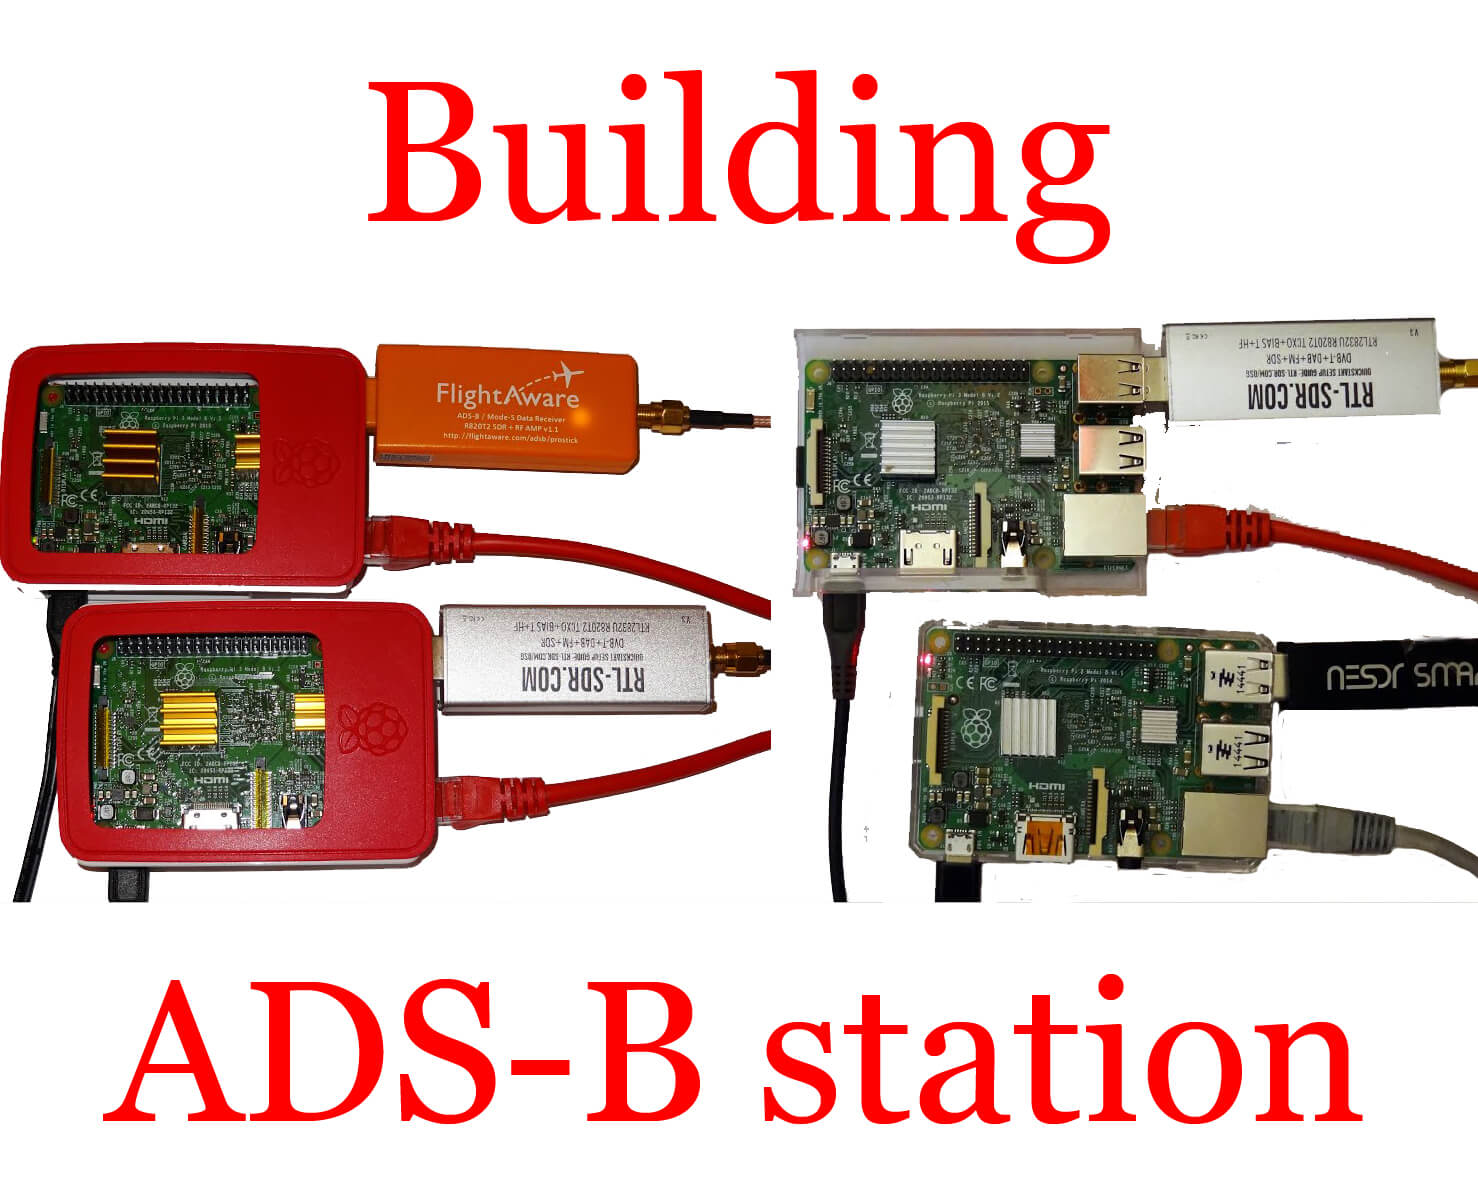 ads b receiver block diagram radio for everyone new posts building an    ads       b    station  radio for everyone new posts building an    ads       b    station